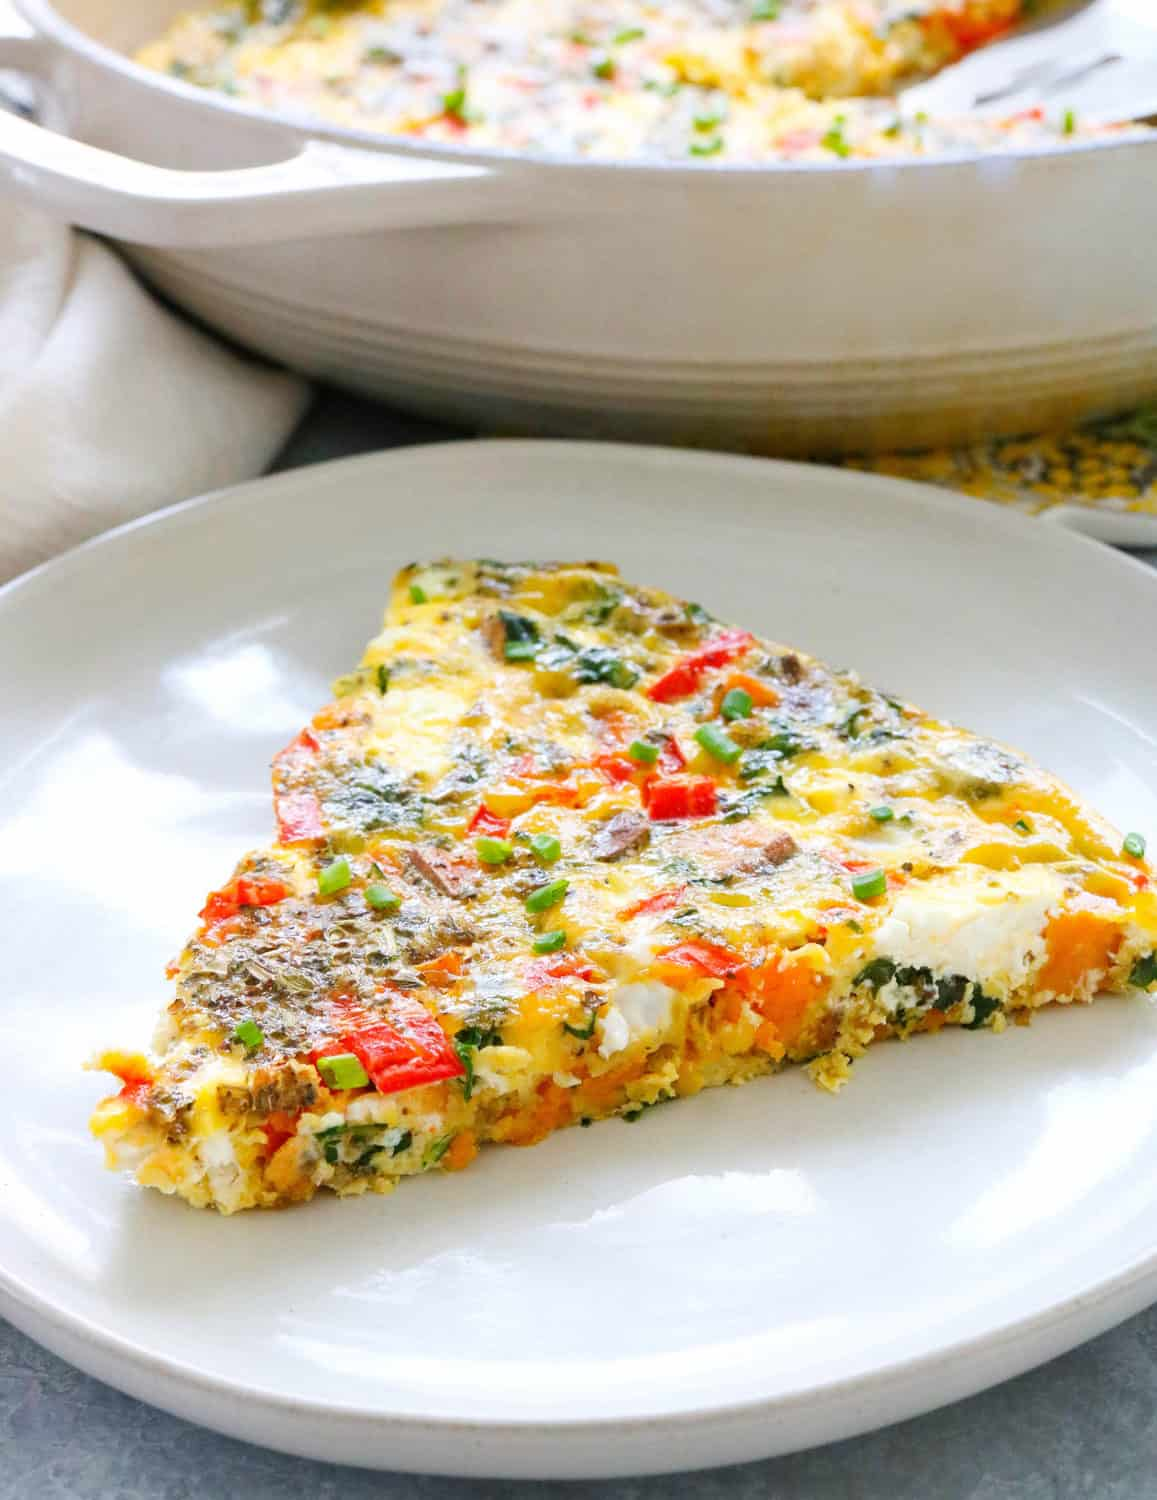 close up of piece of frittata filled with veggies and cheese on a plate